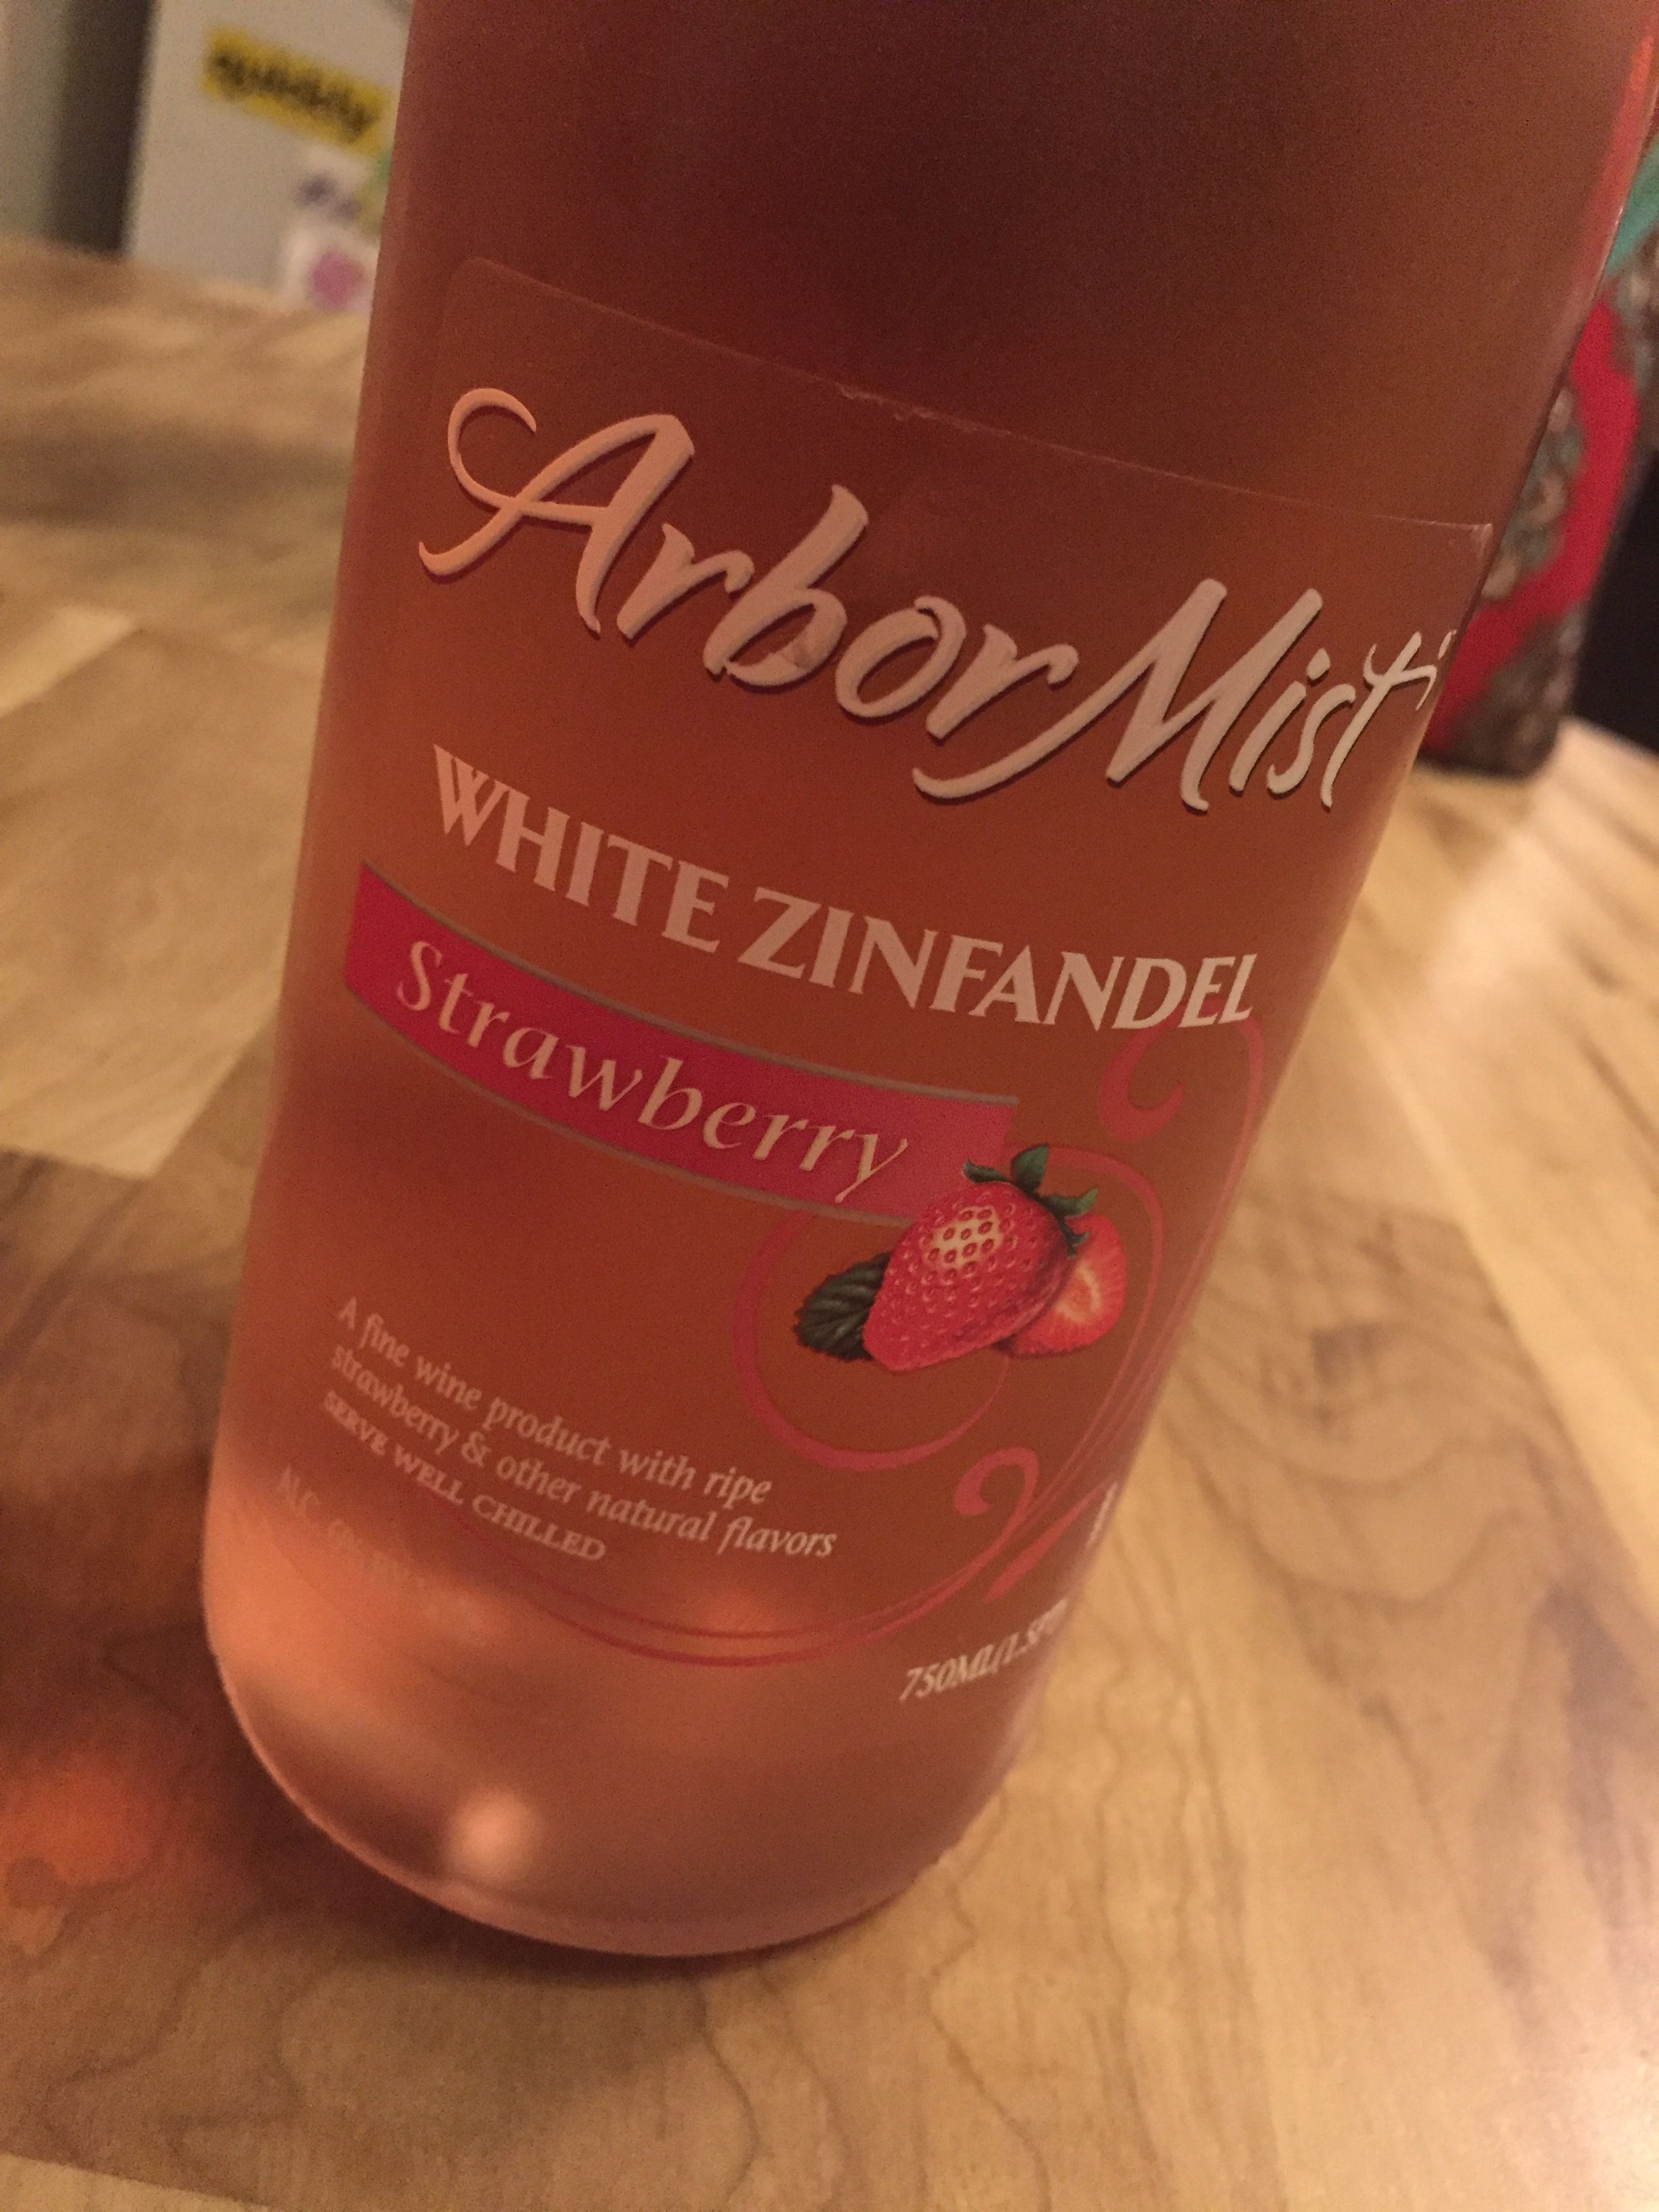 Pinterest Yelena Yolanda Evans Ig Beautifultwins Snapchat Beautifultwins7 Natural Flavors White Zinfandel Wine Bottle